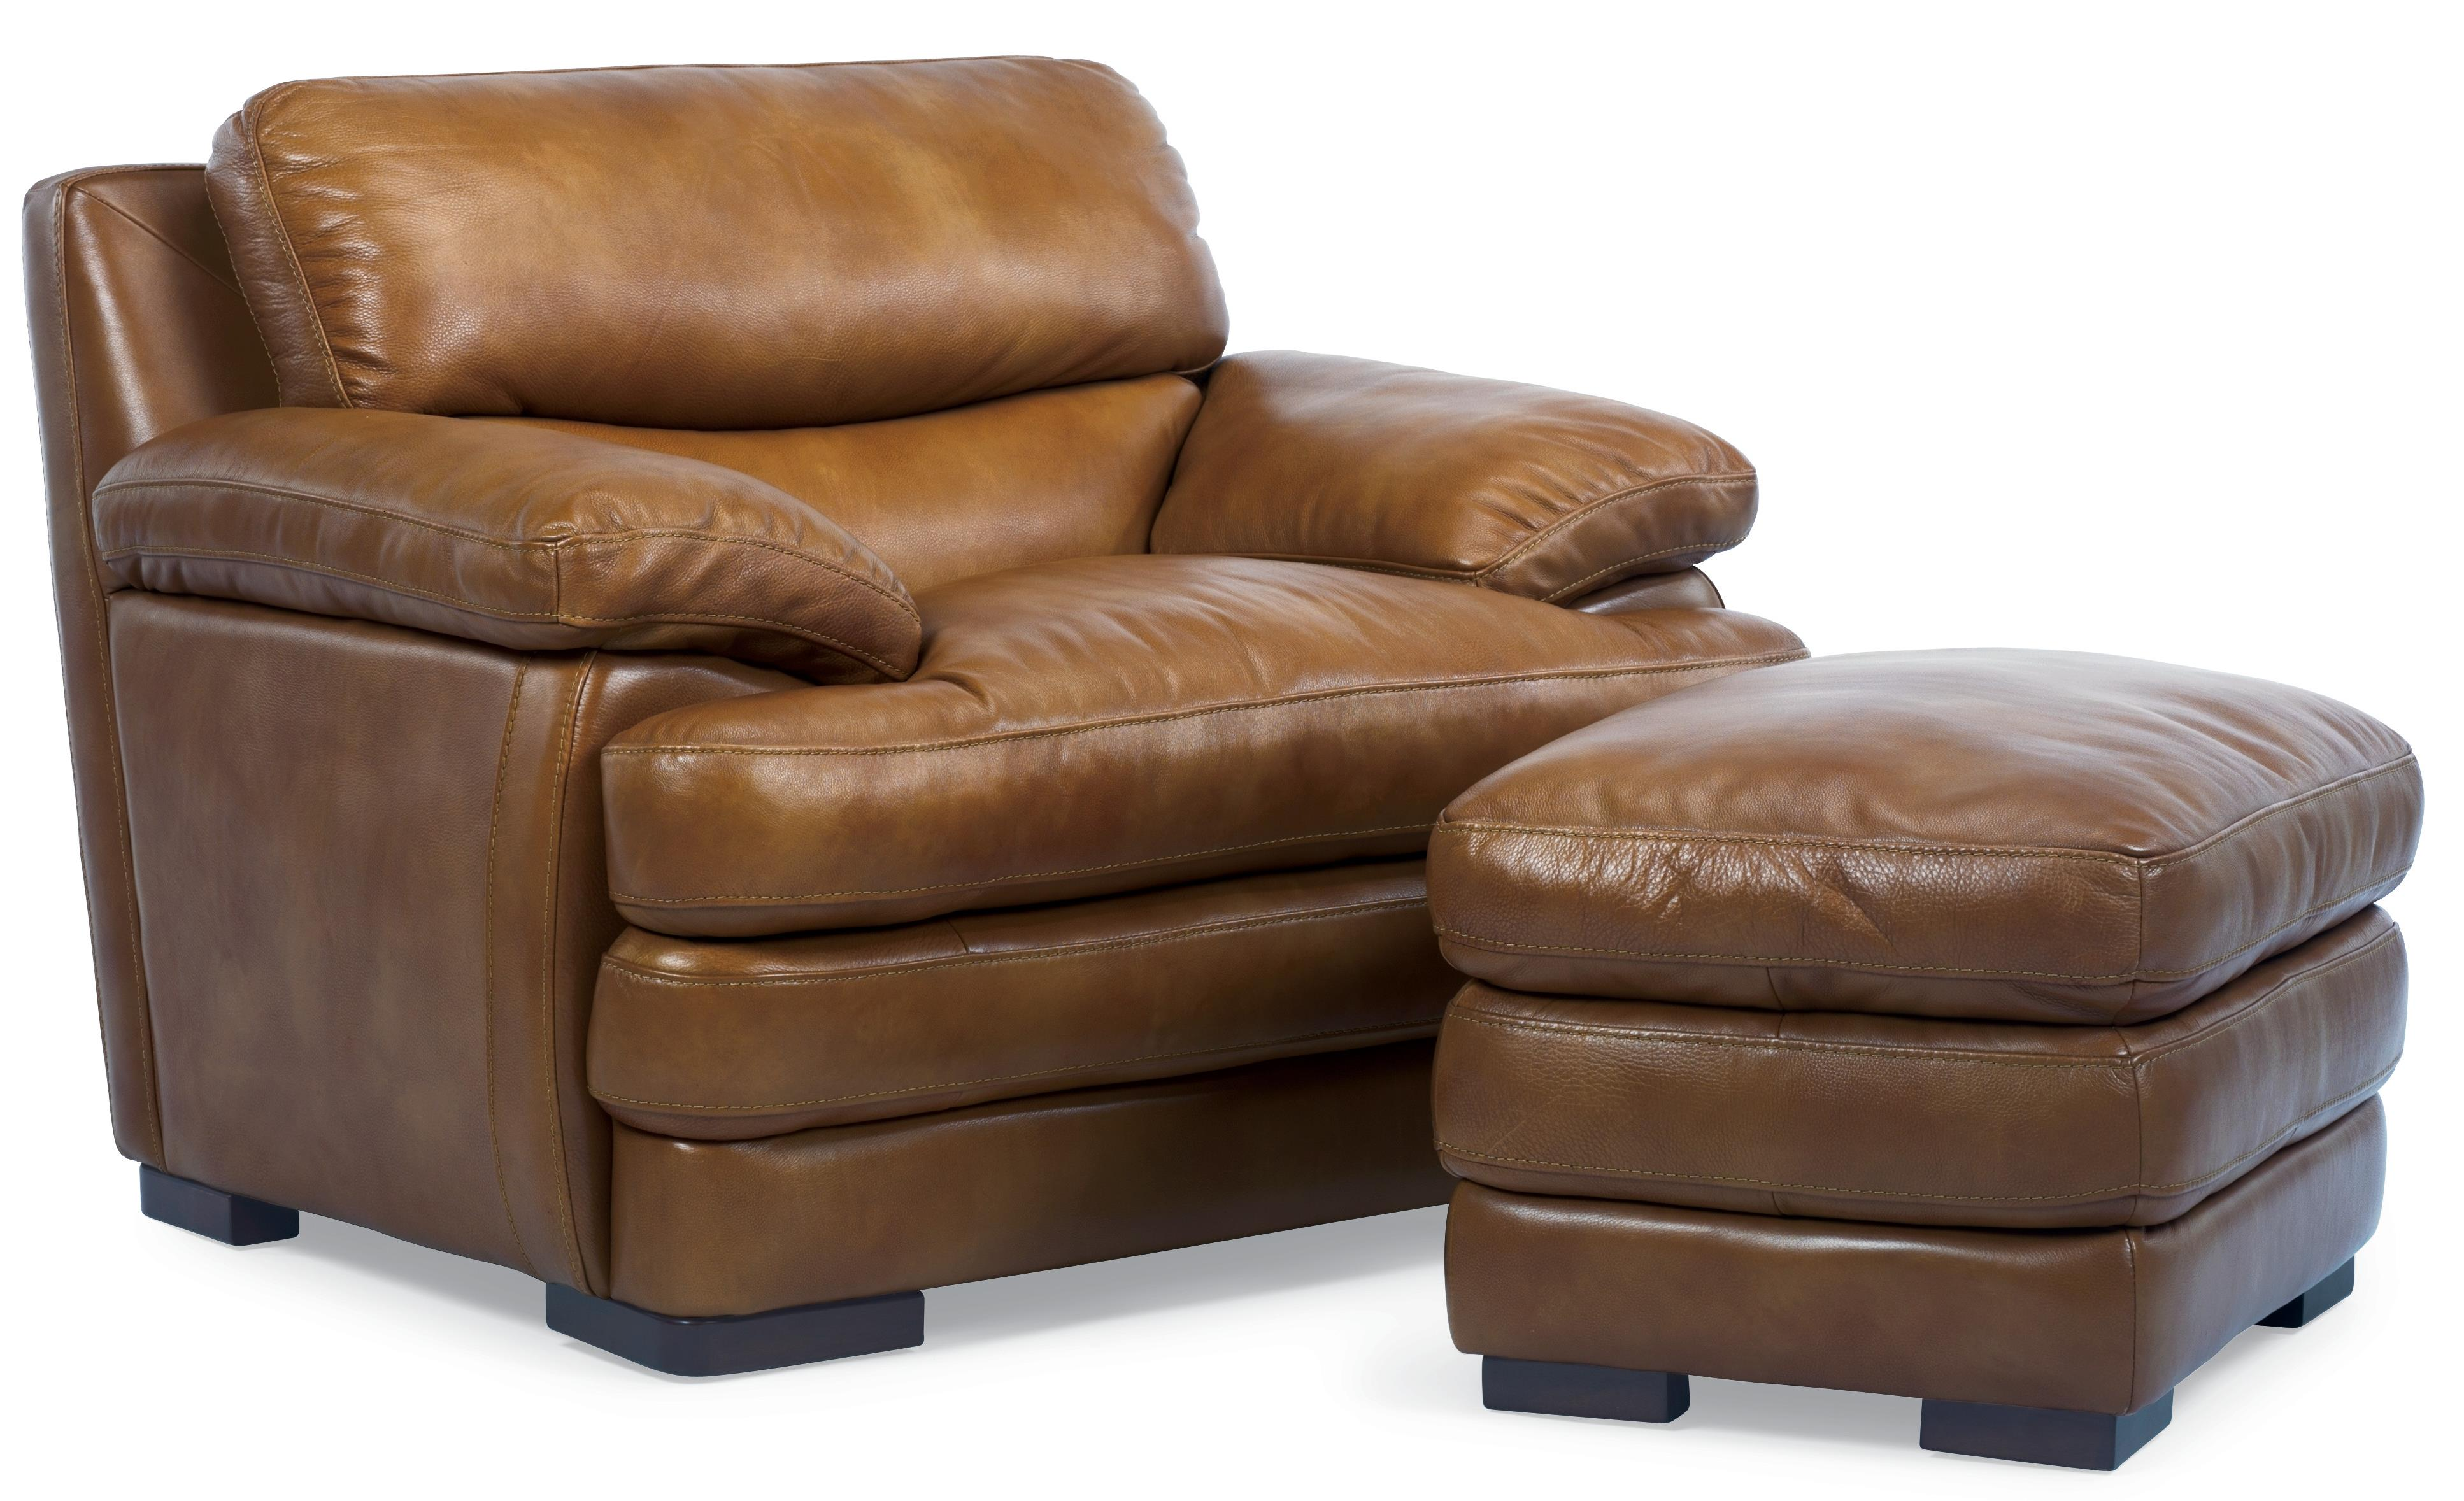 Flexsteel Latitudes - Dylan Leather Chair & Ottoman - Item Number: 1127-08+10-908-80